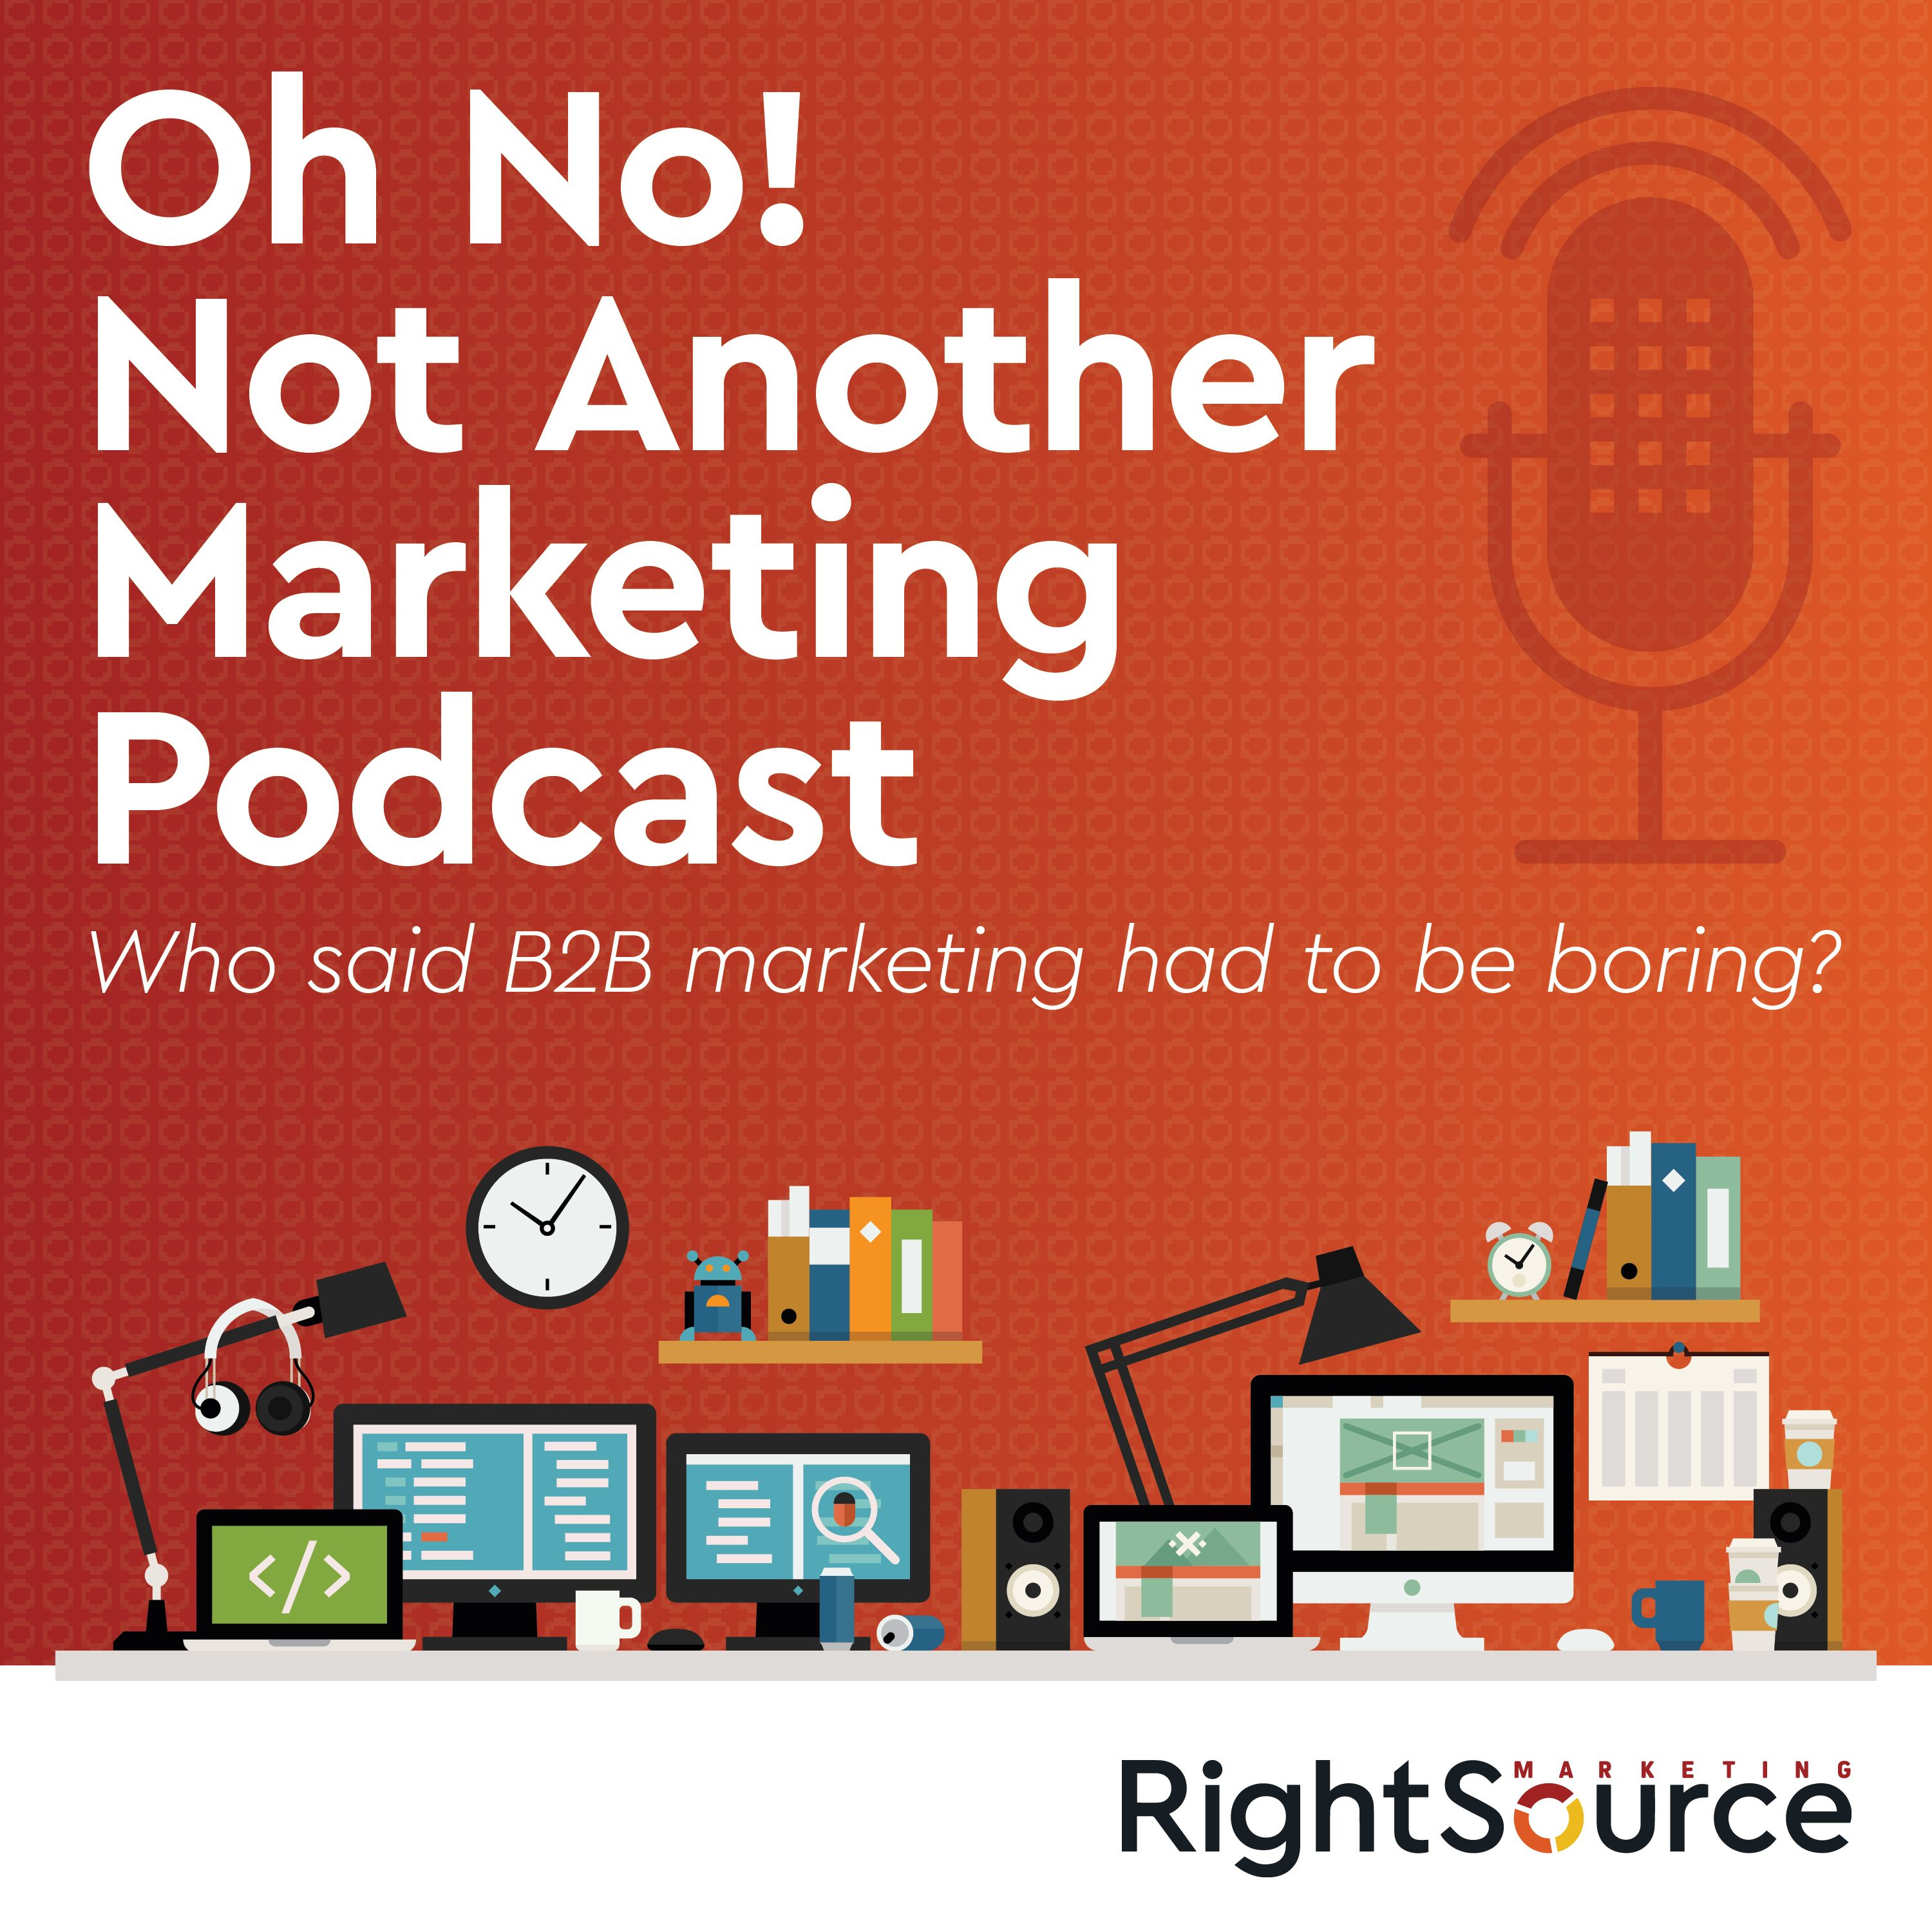 Oh No! Not Another Marketing Podcast